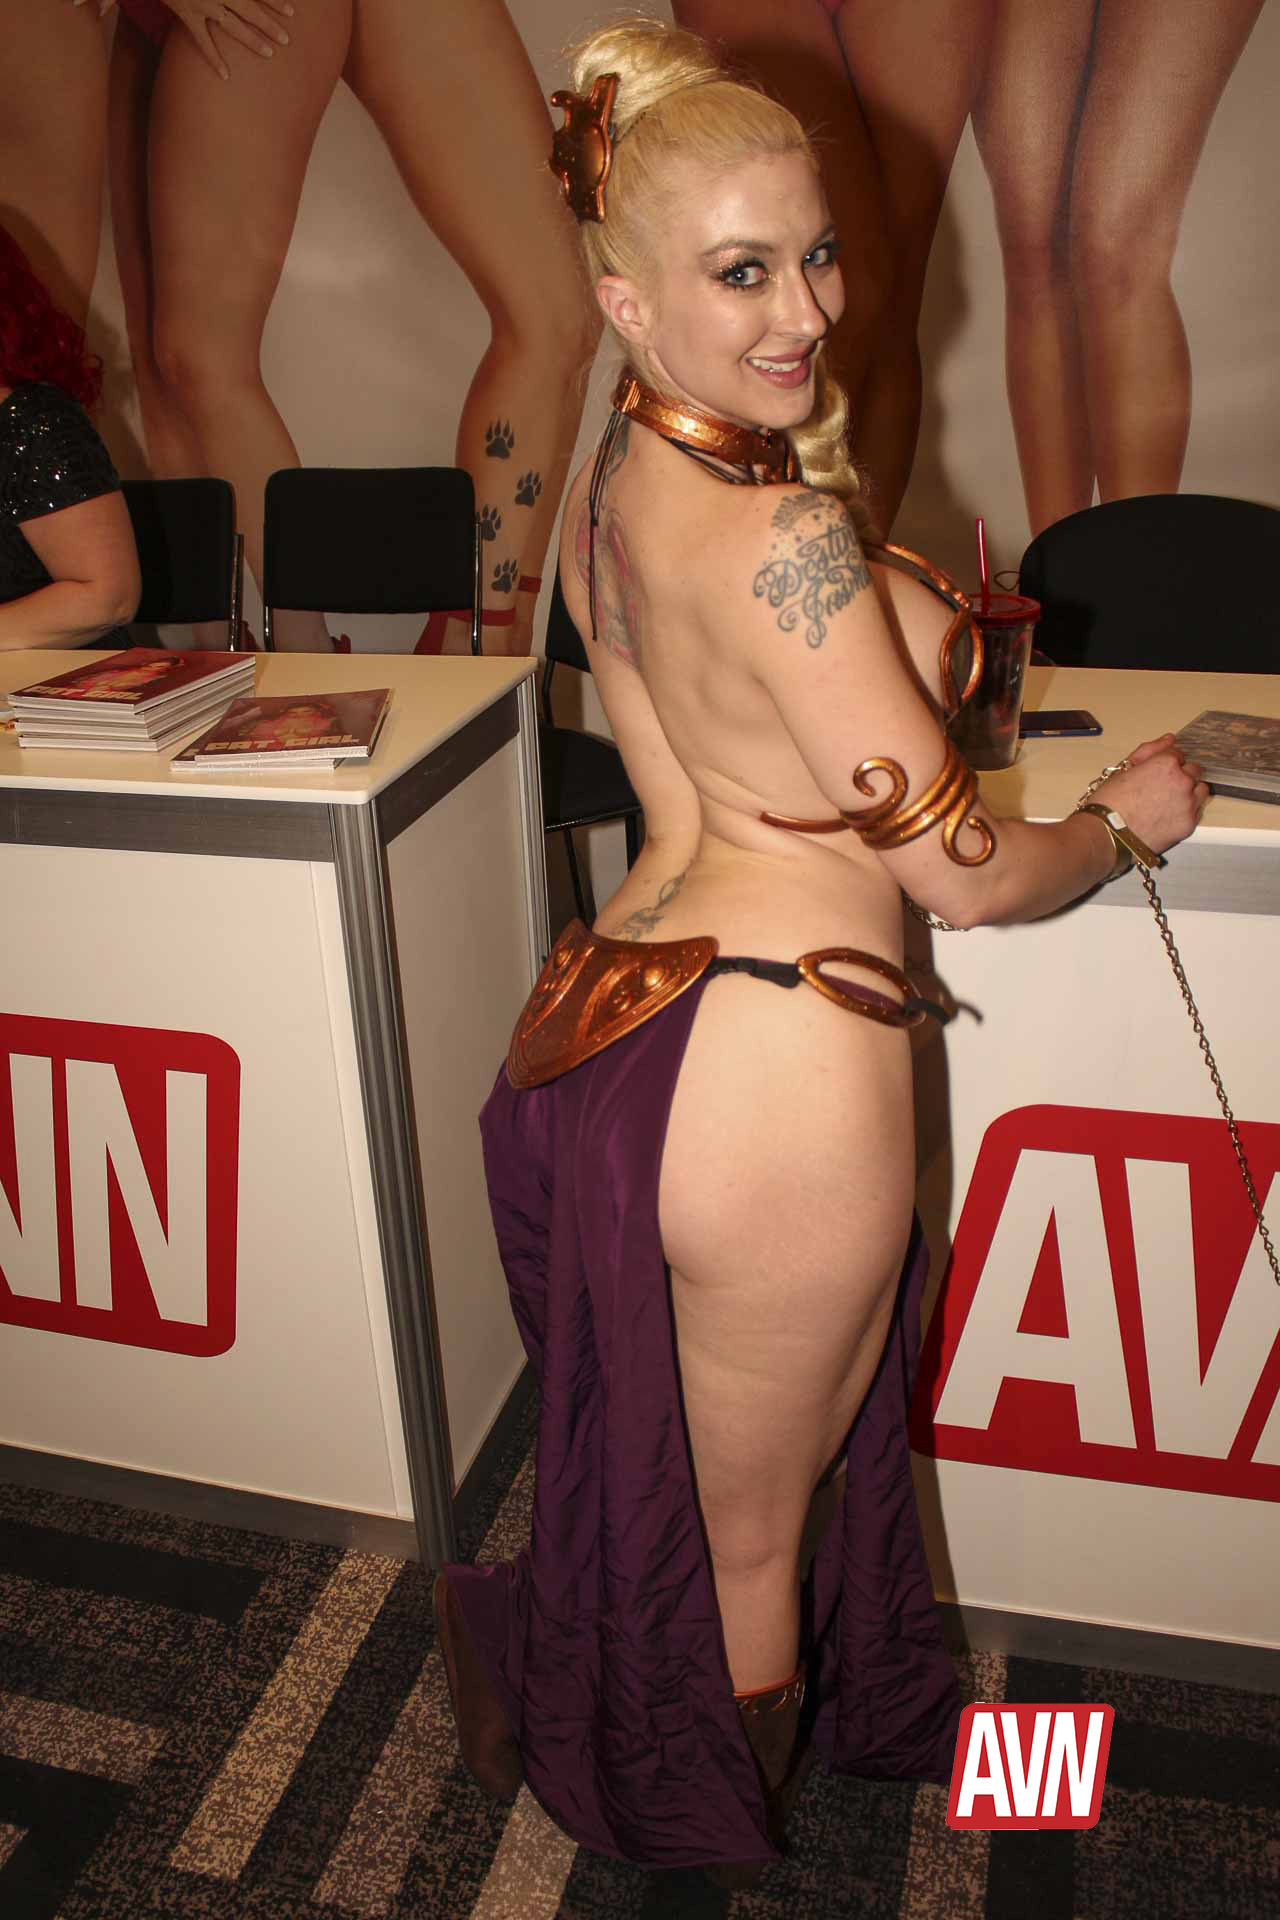 Newest Award Shows Porn Images